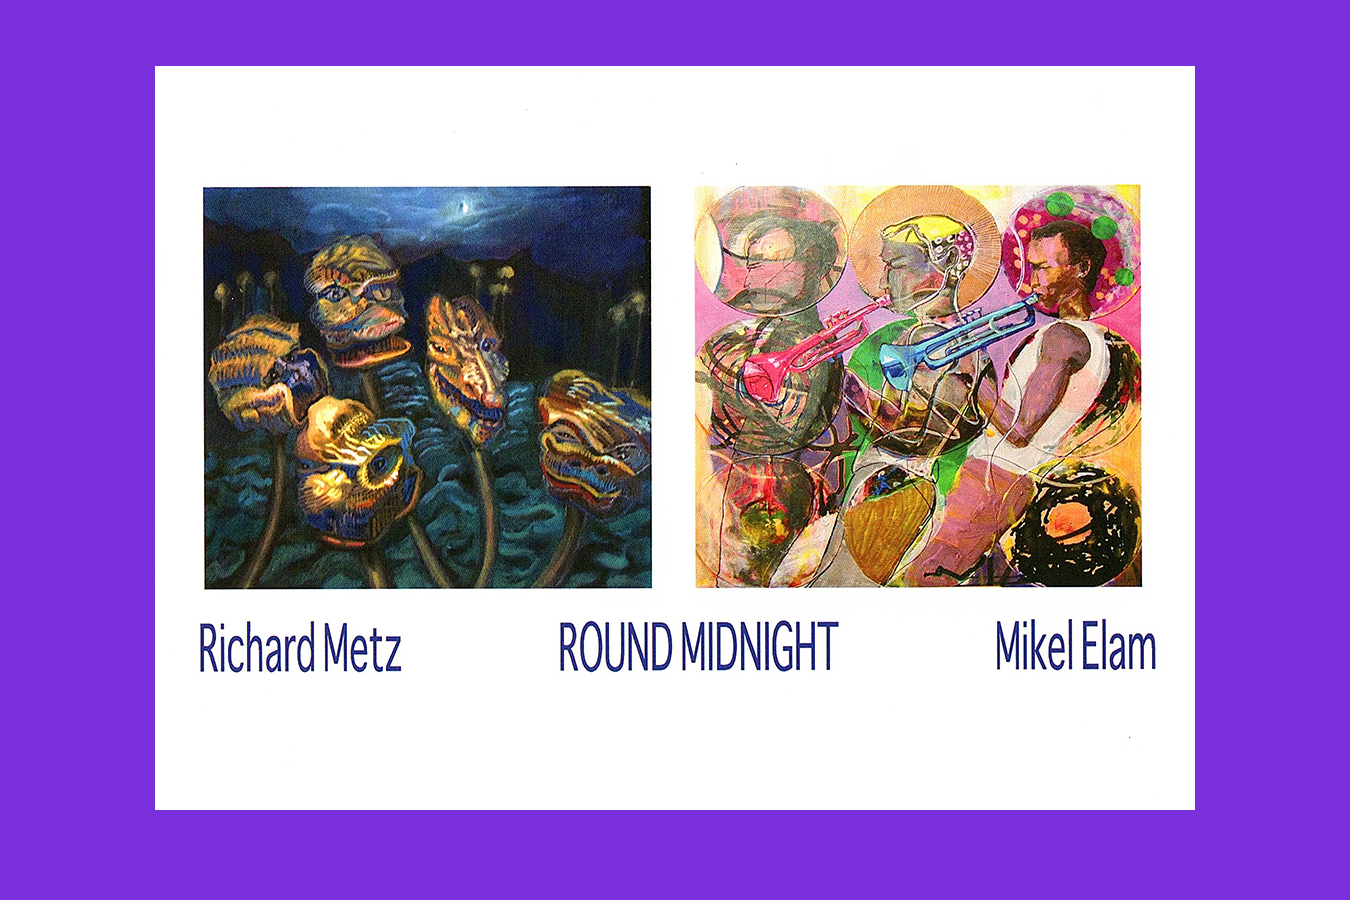 Tony_Ward_Studio_Mikel_Elam_affiliate_Artist_exhibition_Round_Midnight_panting_Mixed_media